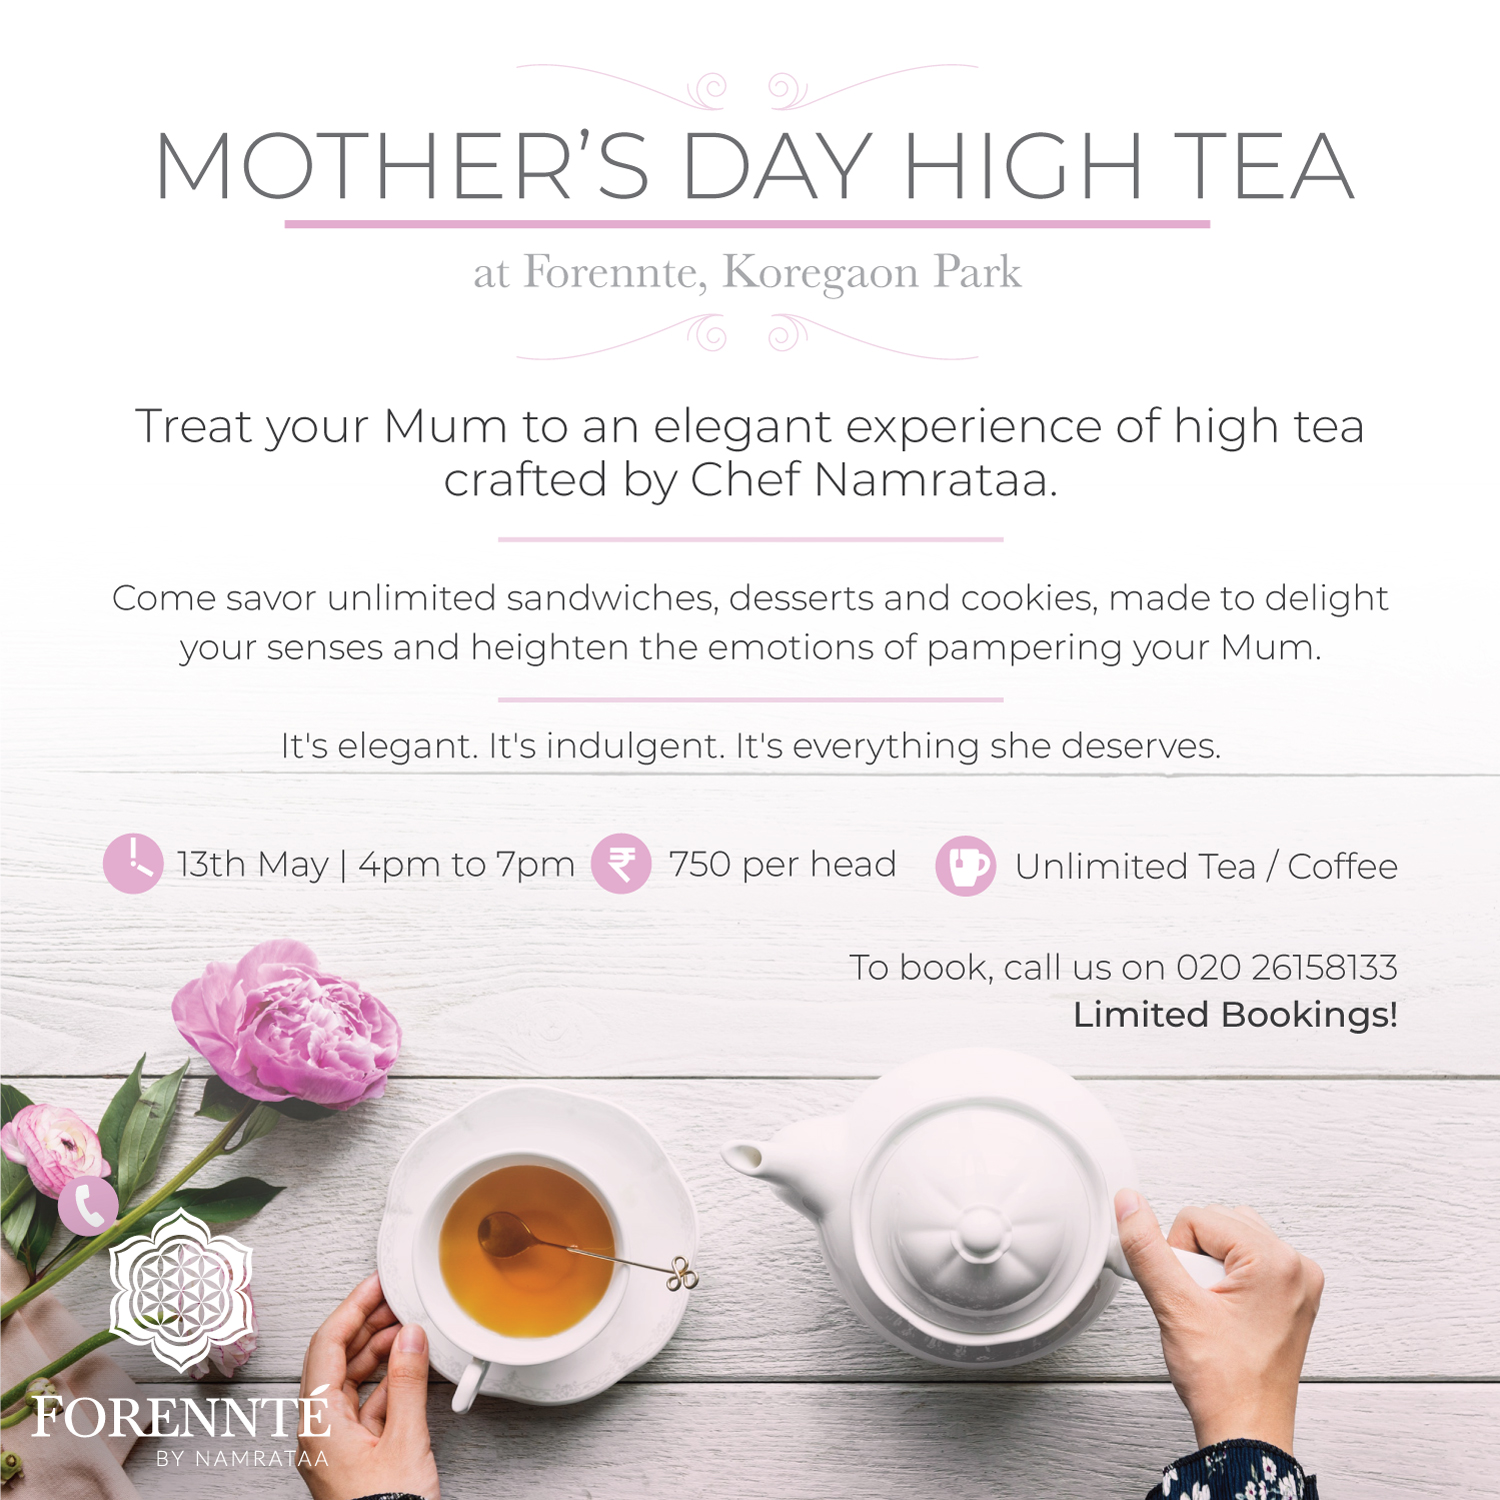 Insta-Post---Mother's-Day-High-Tea